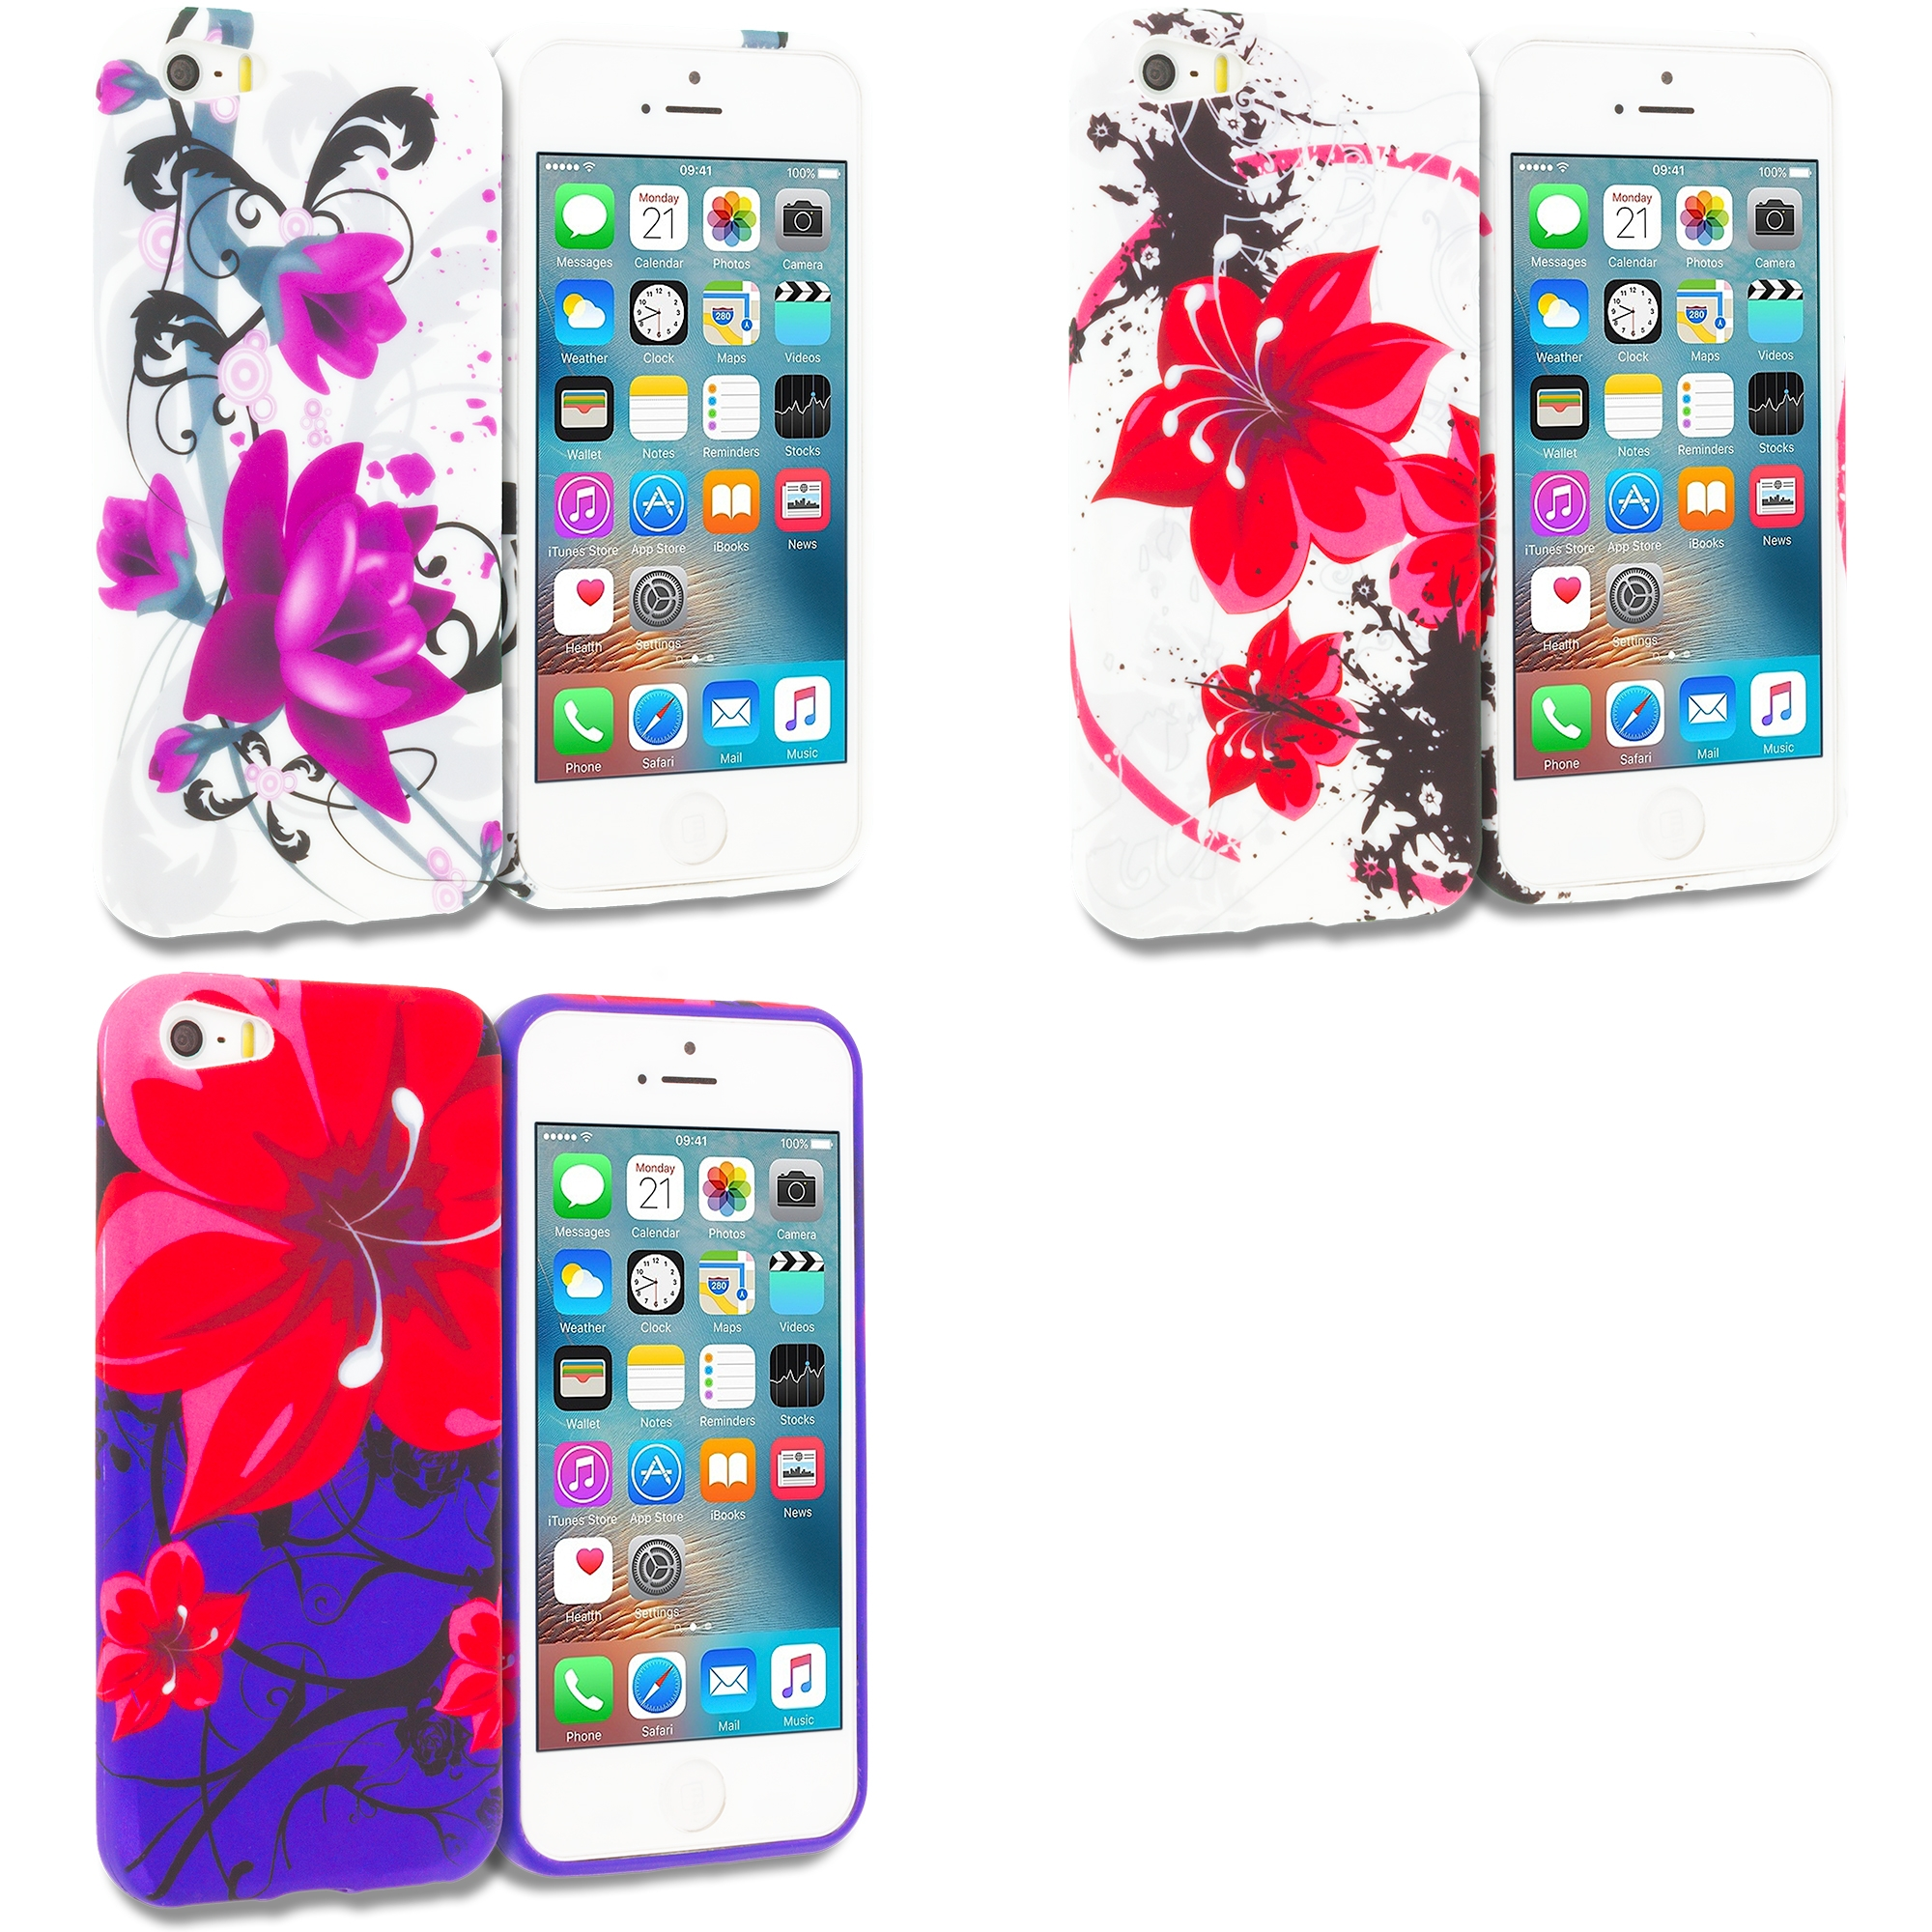 Apple iPhone 5/5S/SE Combo Pack : Red Flowers TPU Design Soft Rubber Case Cover